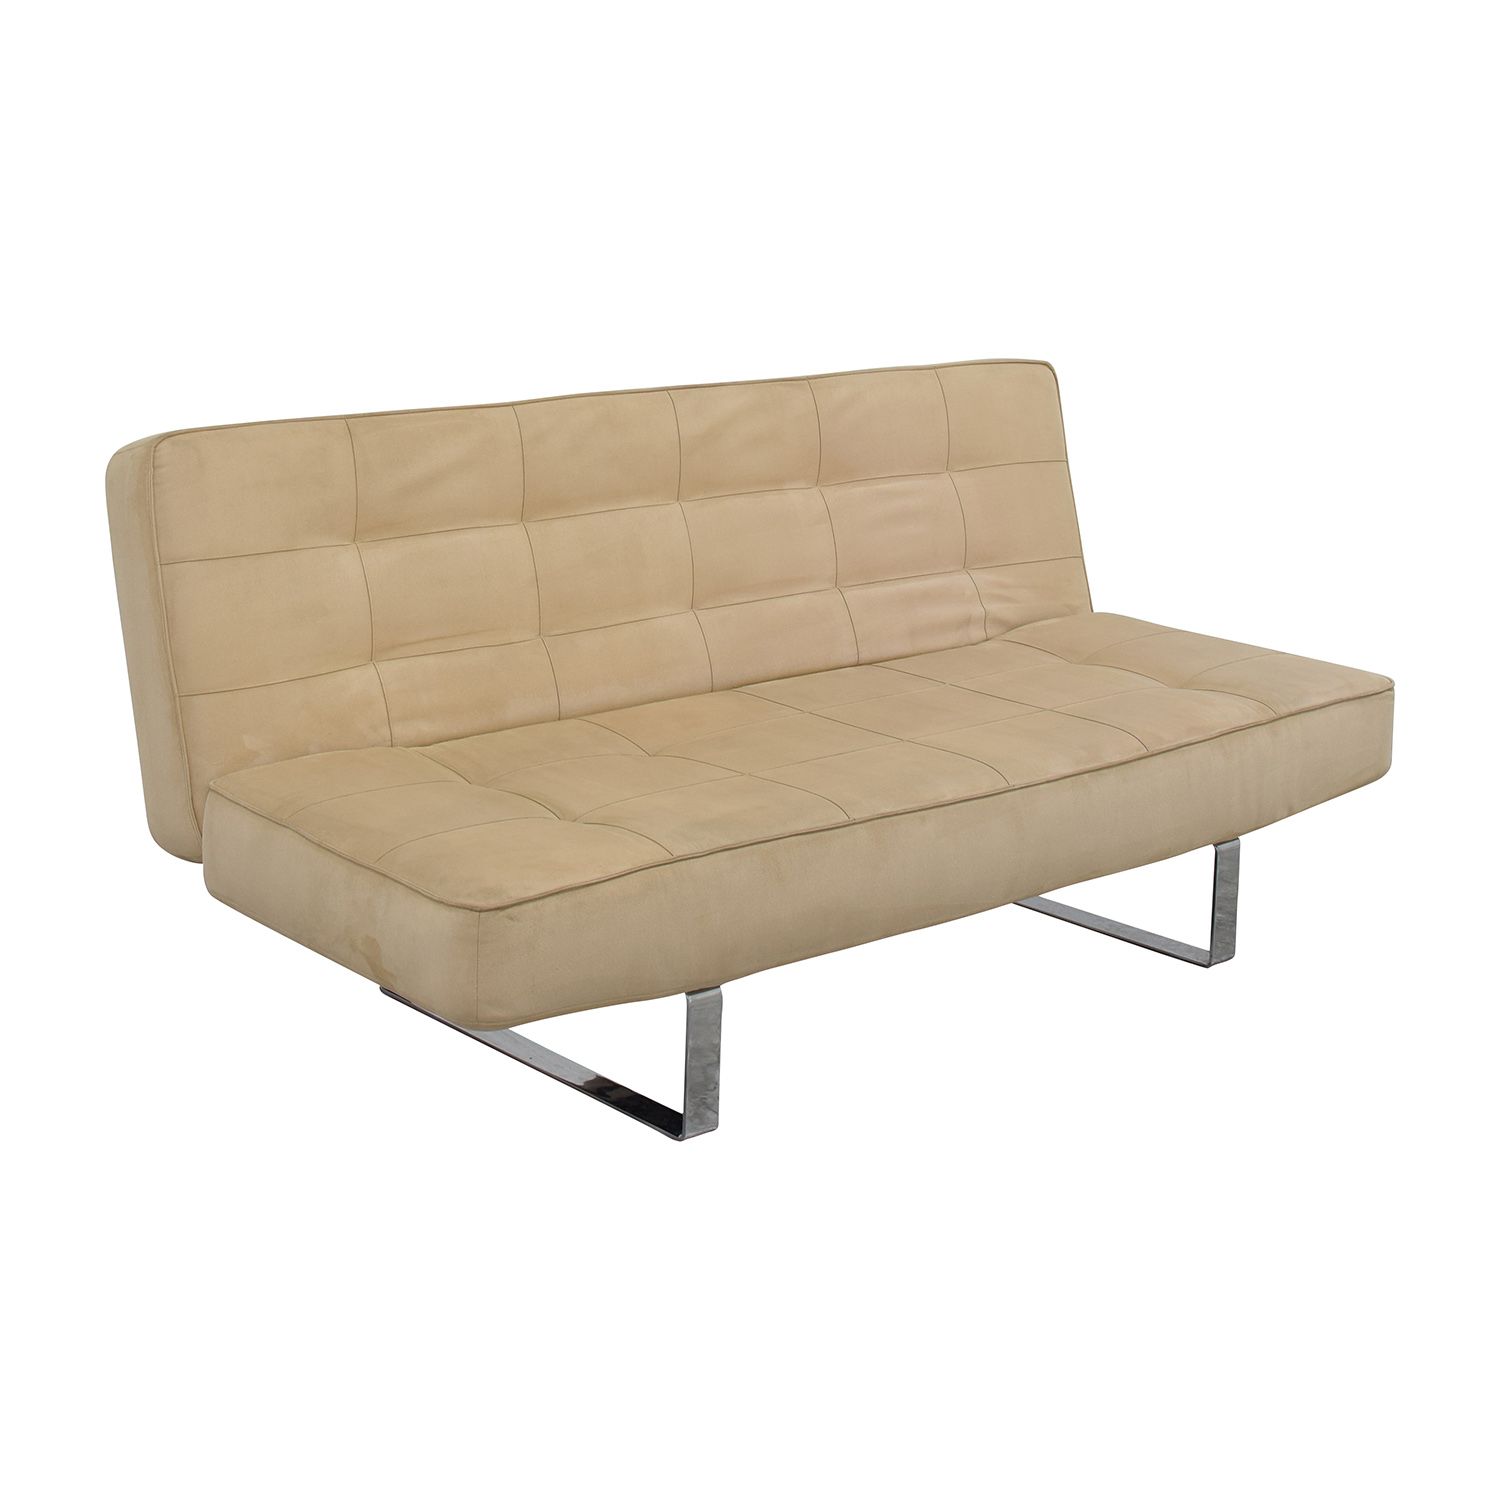 Astounding Ammco Bus Boconcept Sofa Bed Cover Cjindustries Chair Design For Home Cjindustriesco